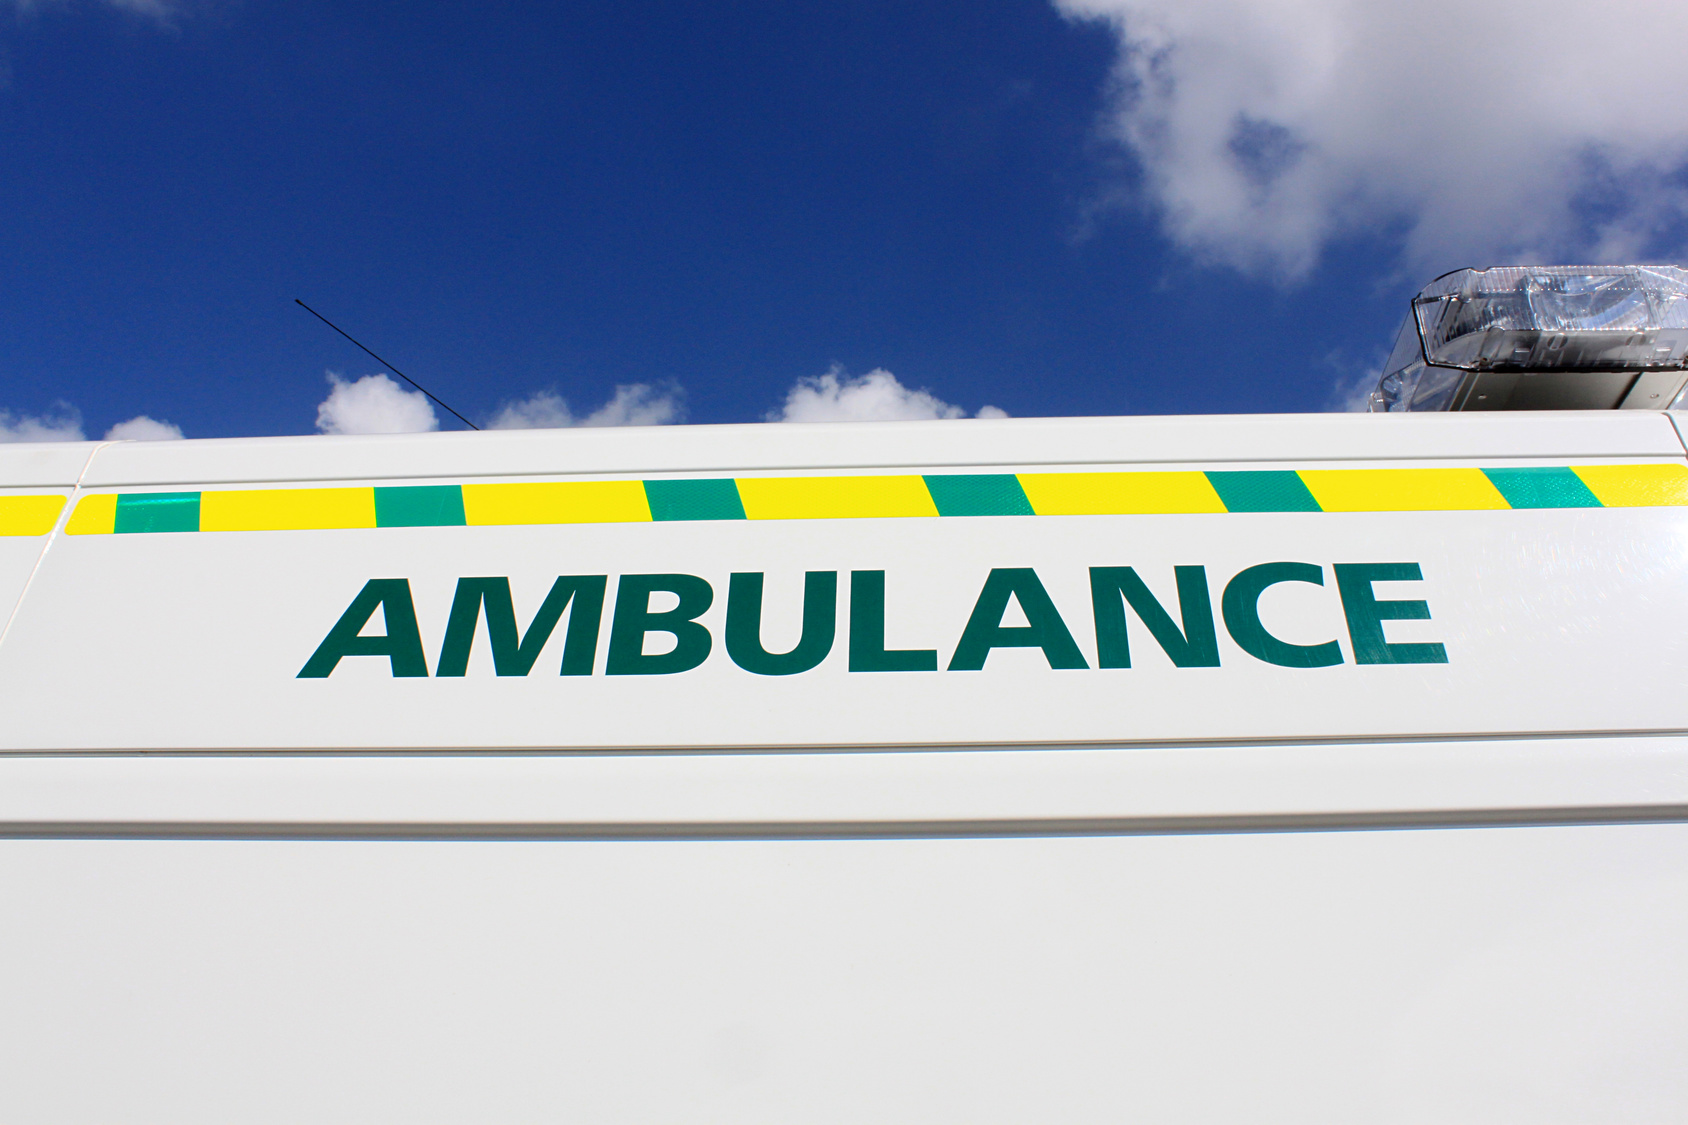 The East of England Ambulance trust was fantastic in January